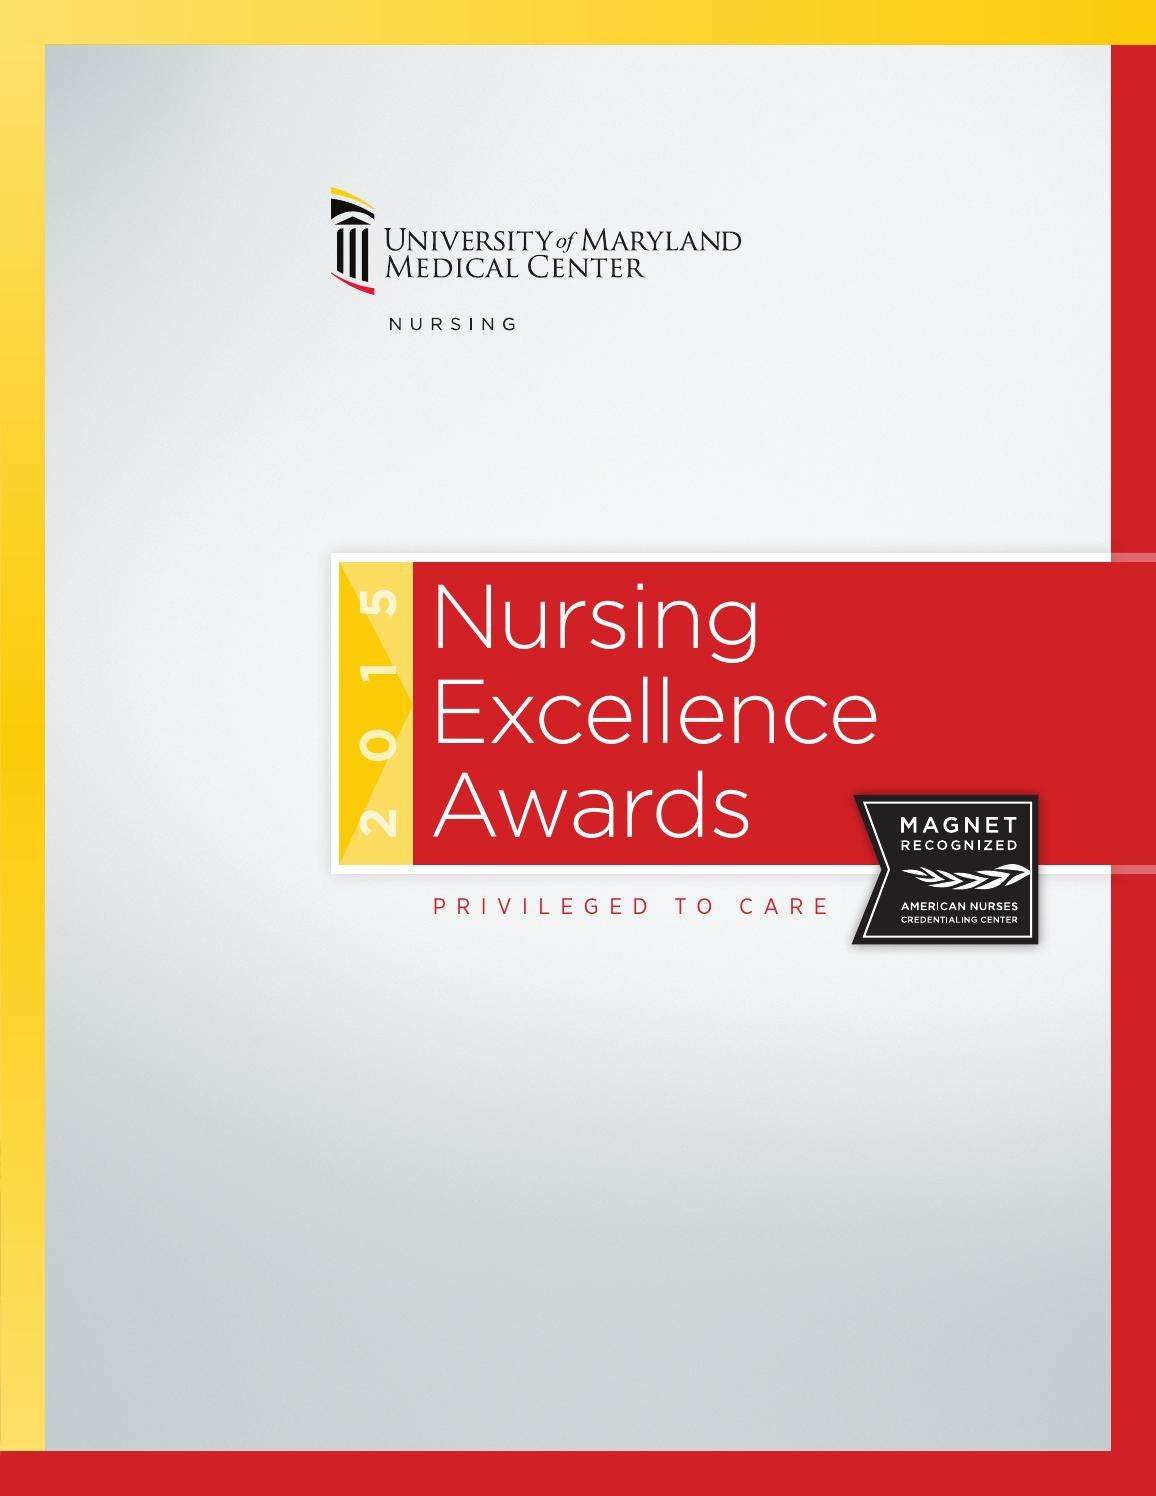 Does anyone know of any current (2008-2013) nursing related topics that I could research?